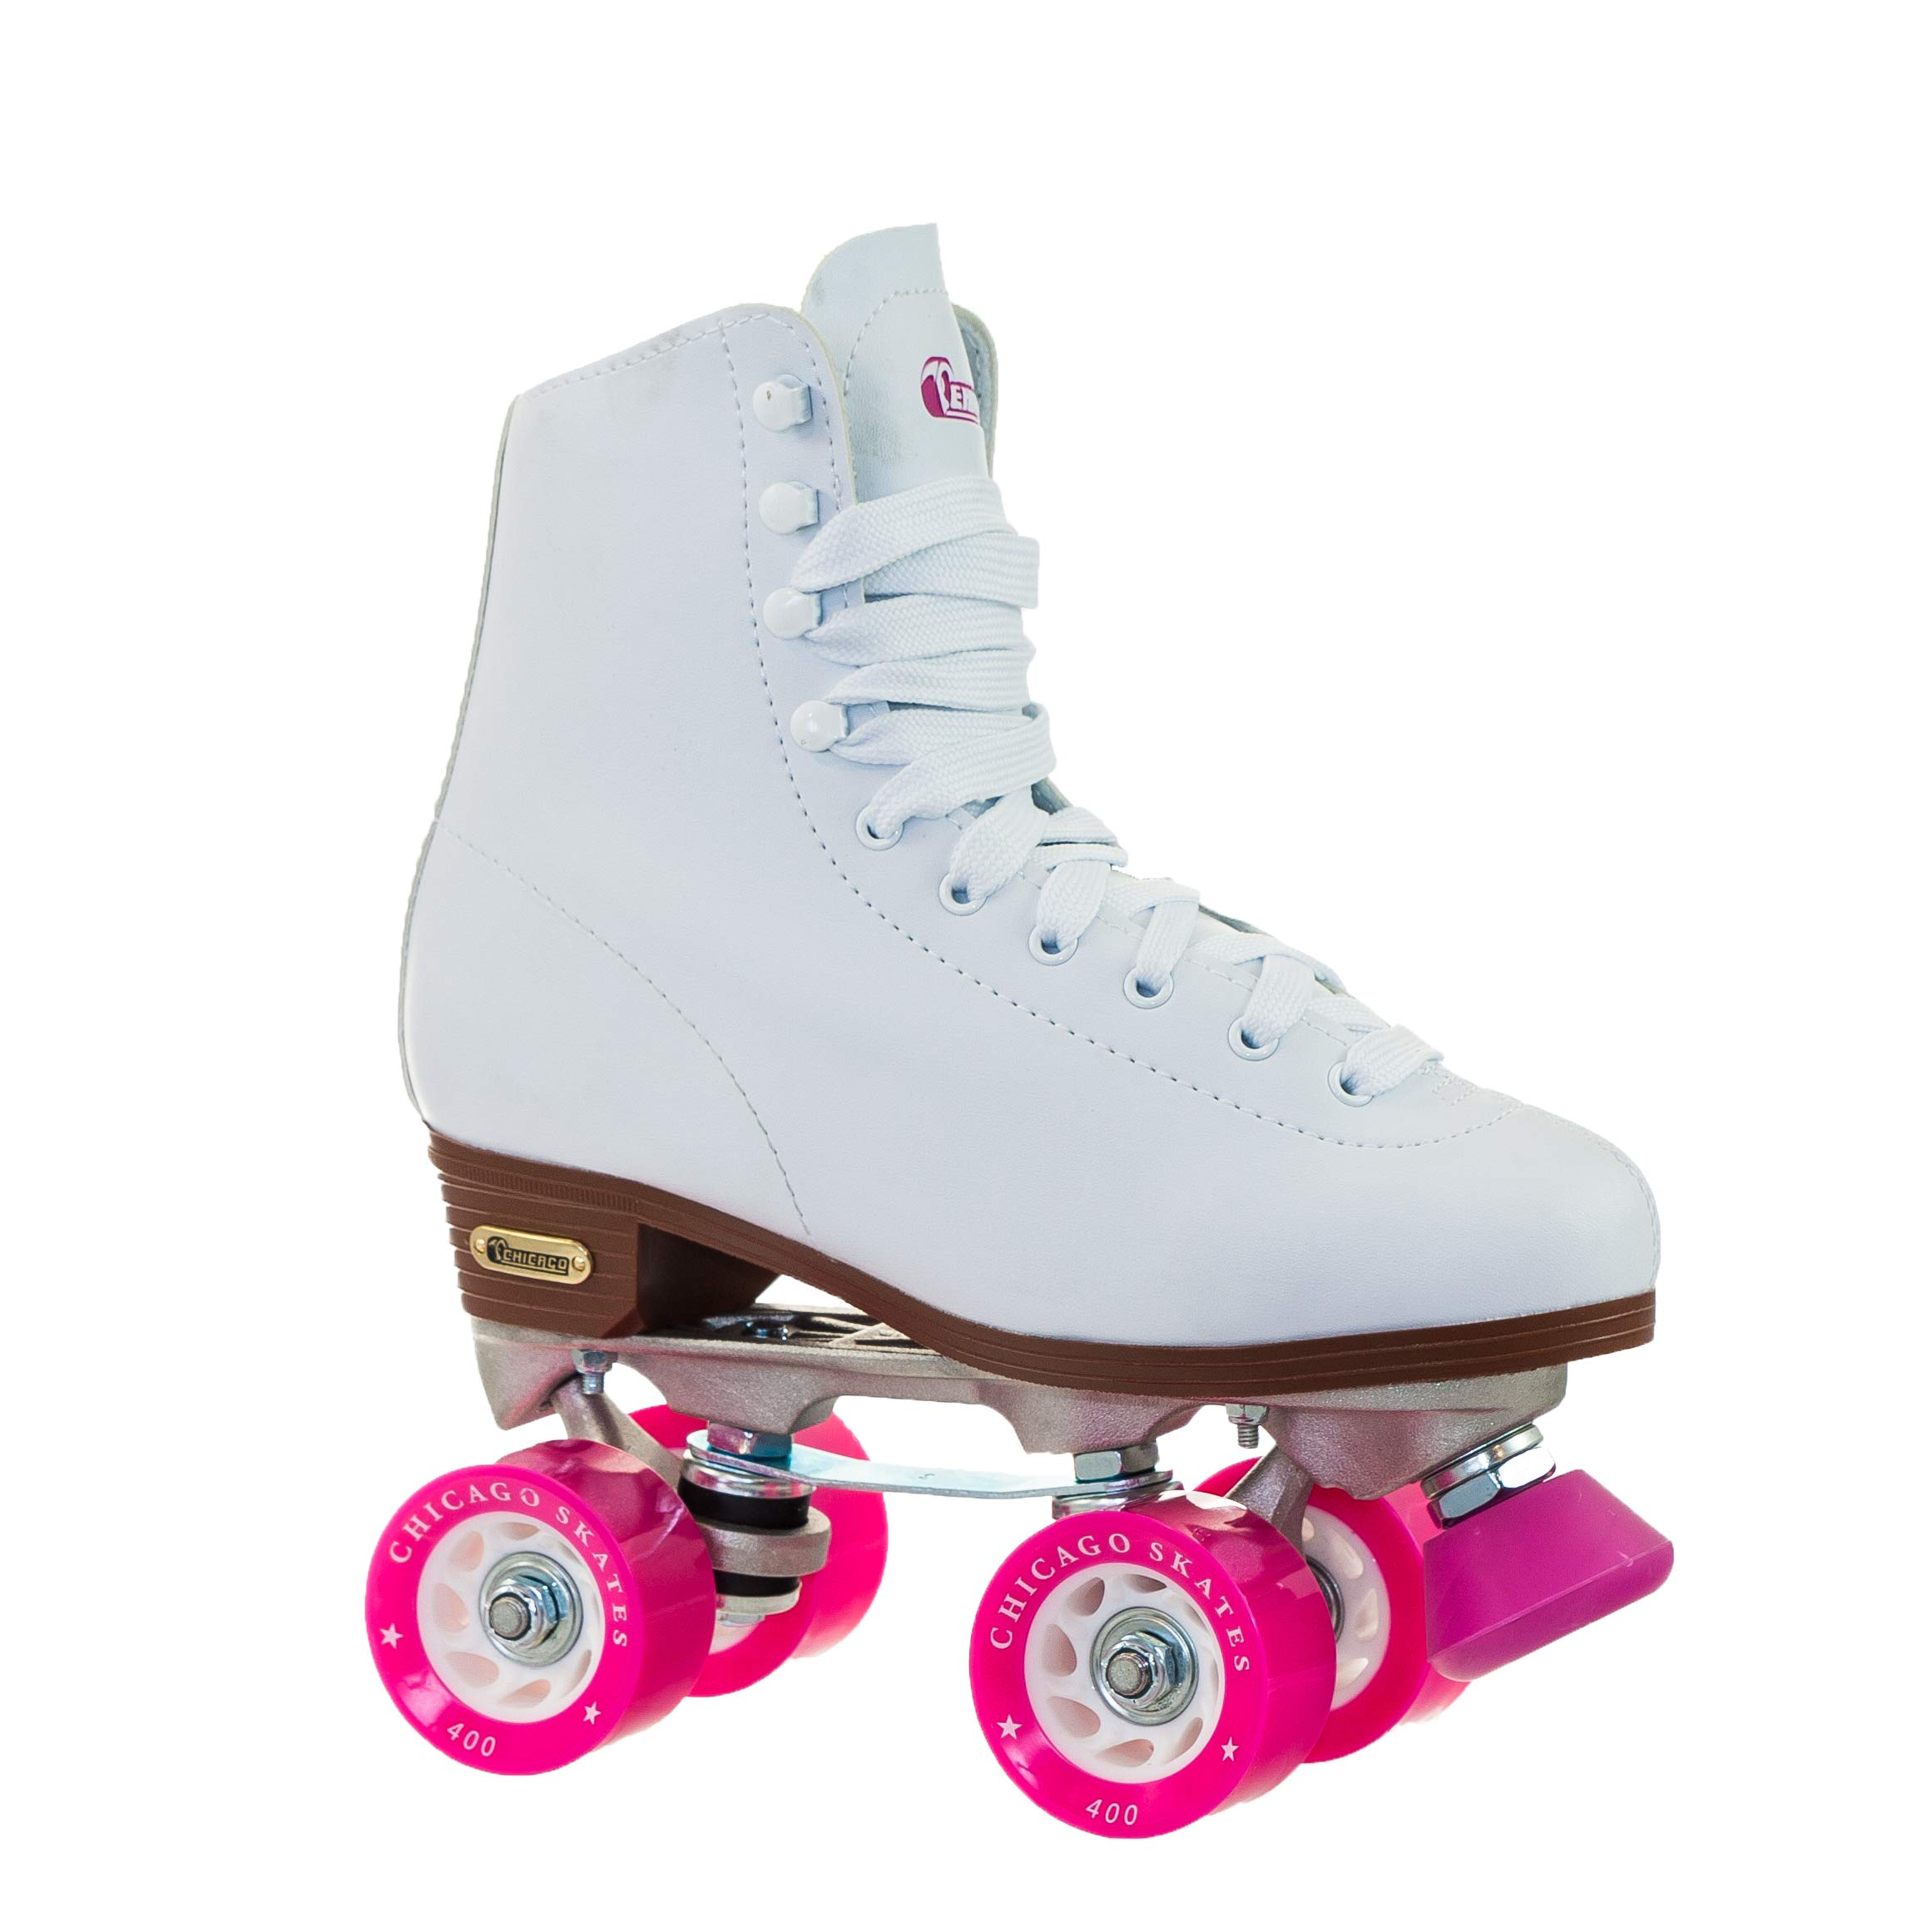 Chicago Women's Classic Roller Skates - White Rink Skates - Size 8 by Chicago Skates